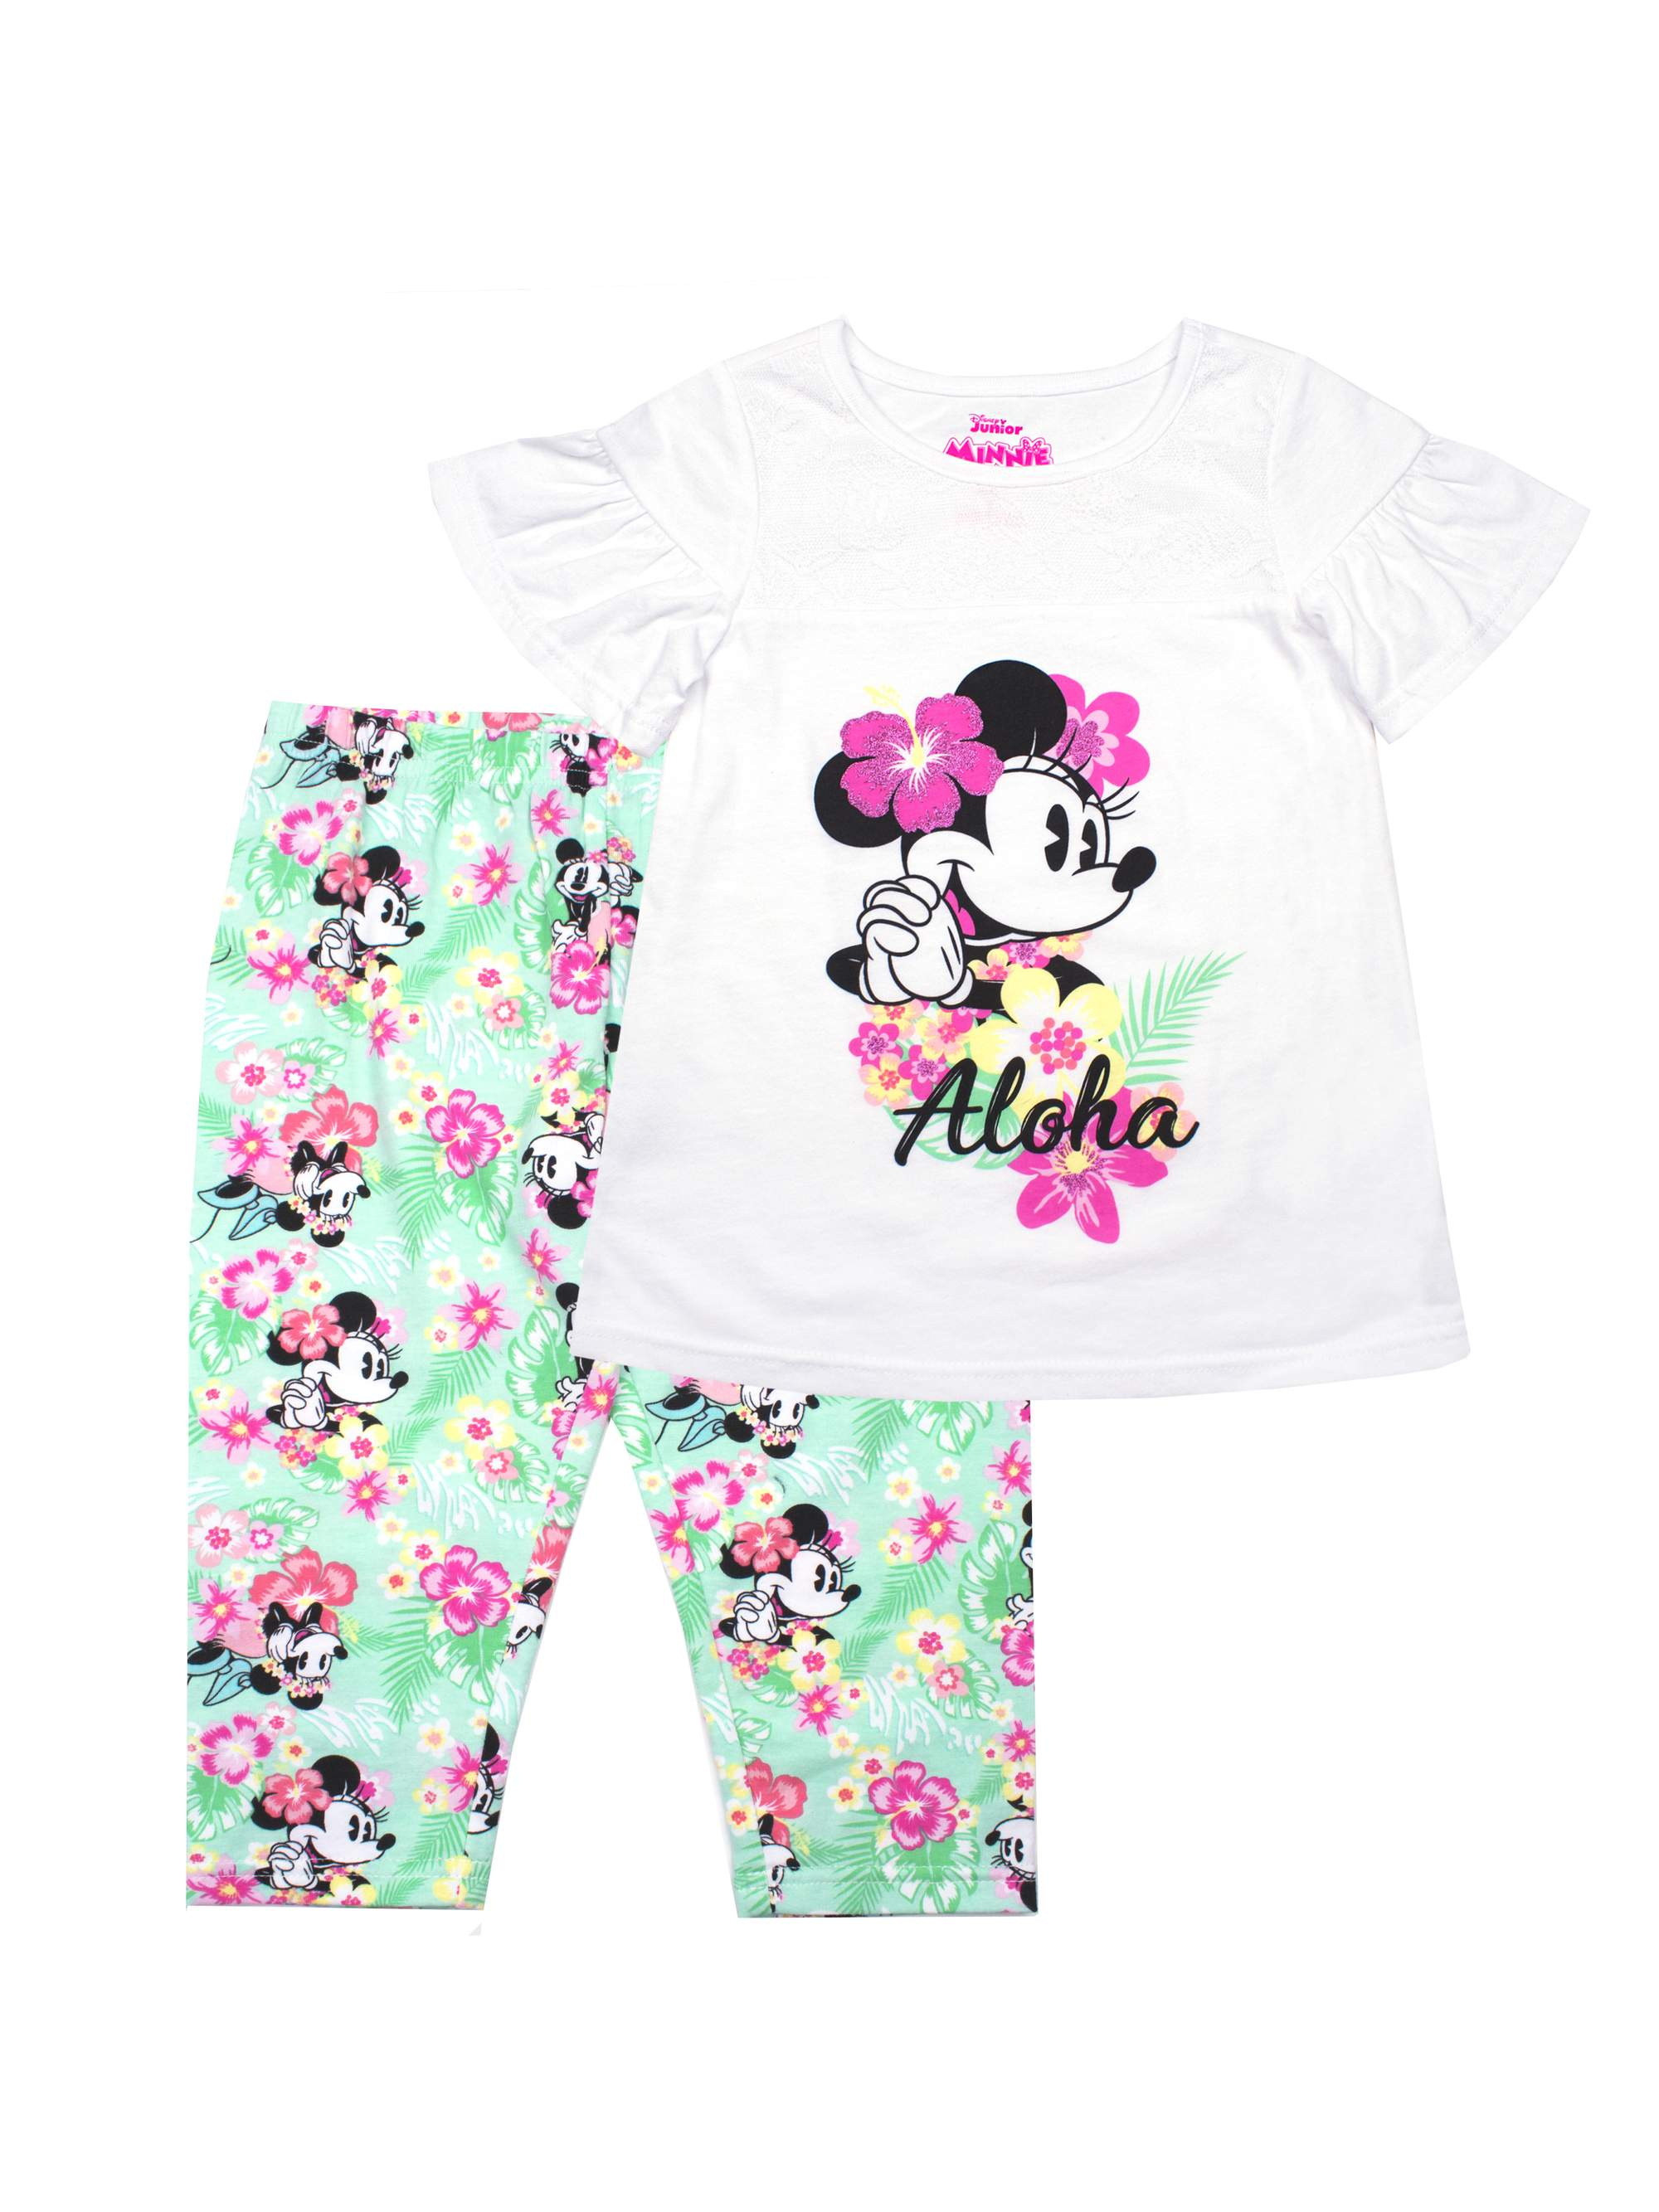 Aloha Minnie Lace Detail Top and Legging, 2-Piece Outfit Set (Little Girls)